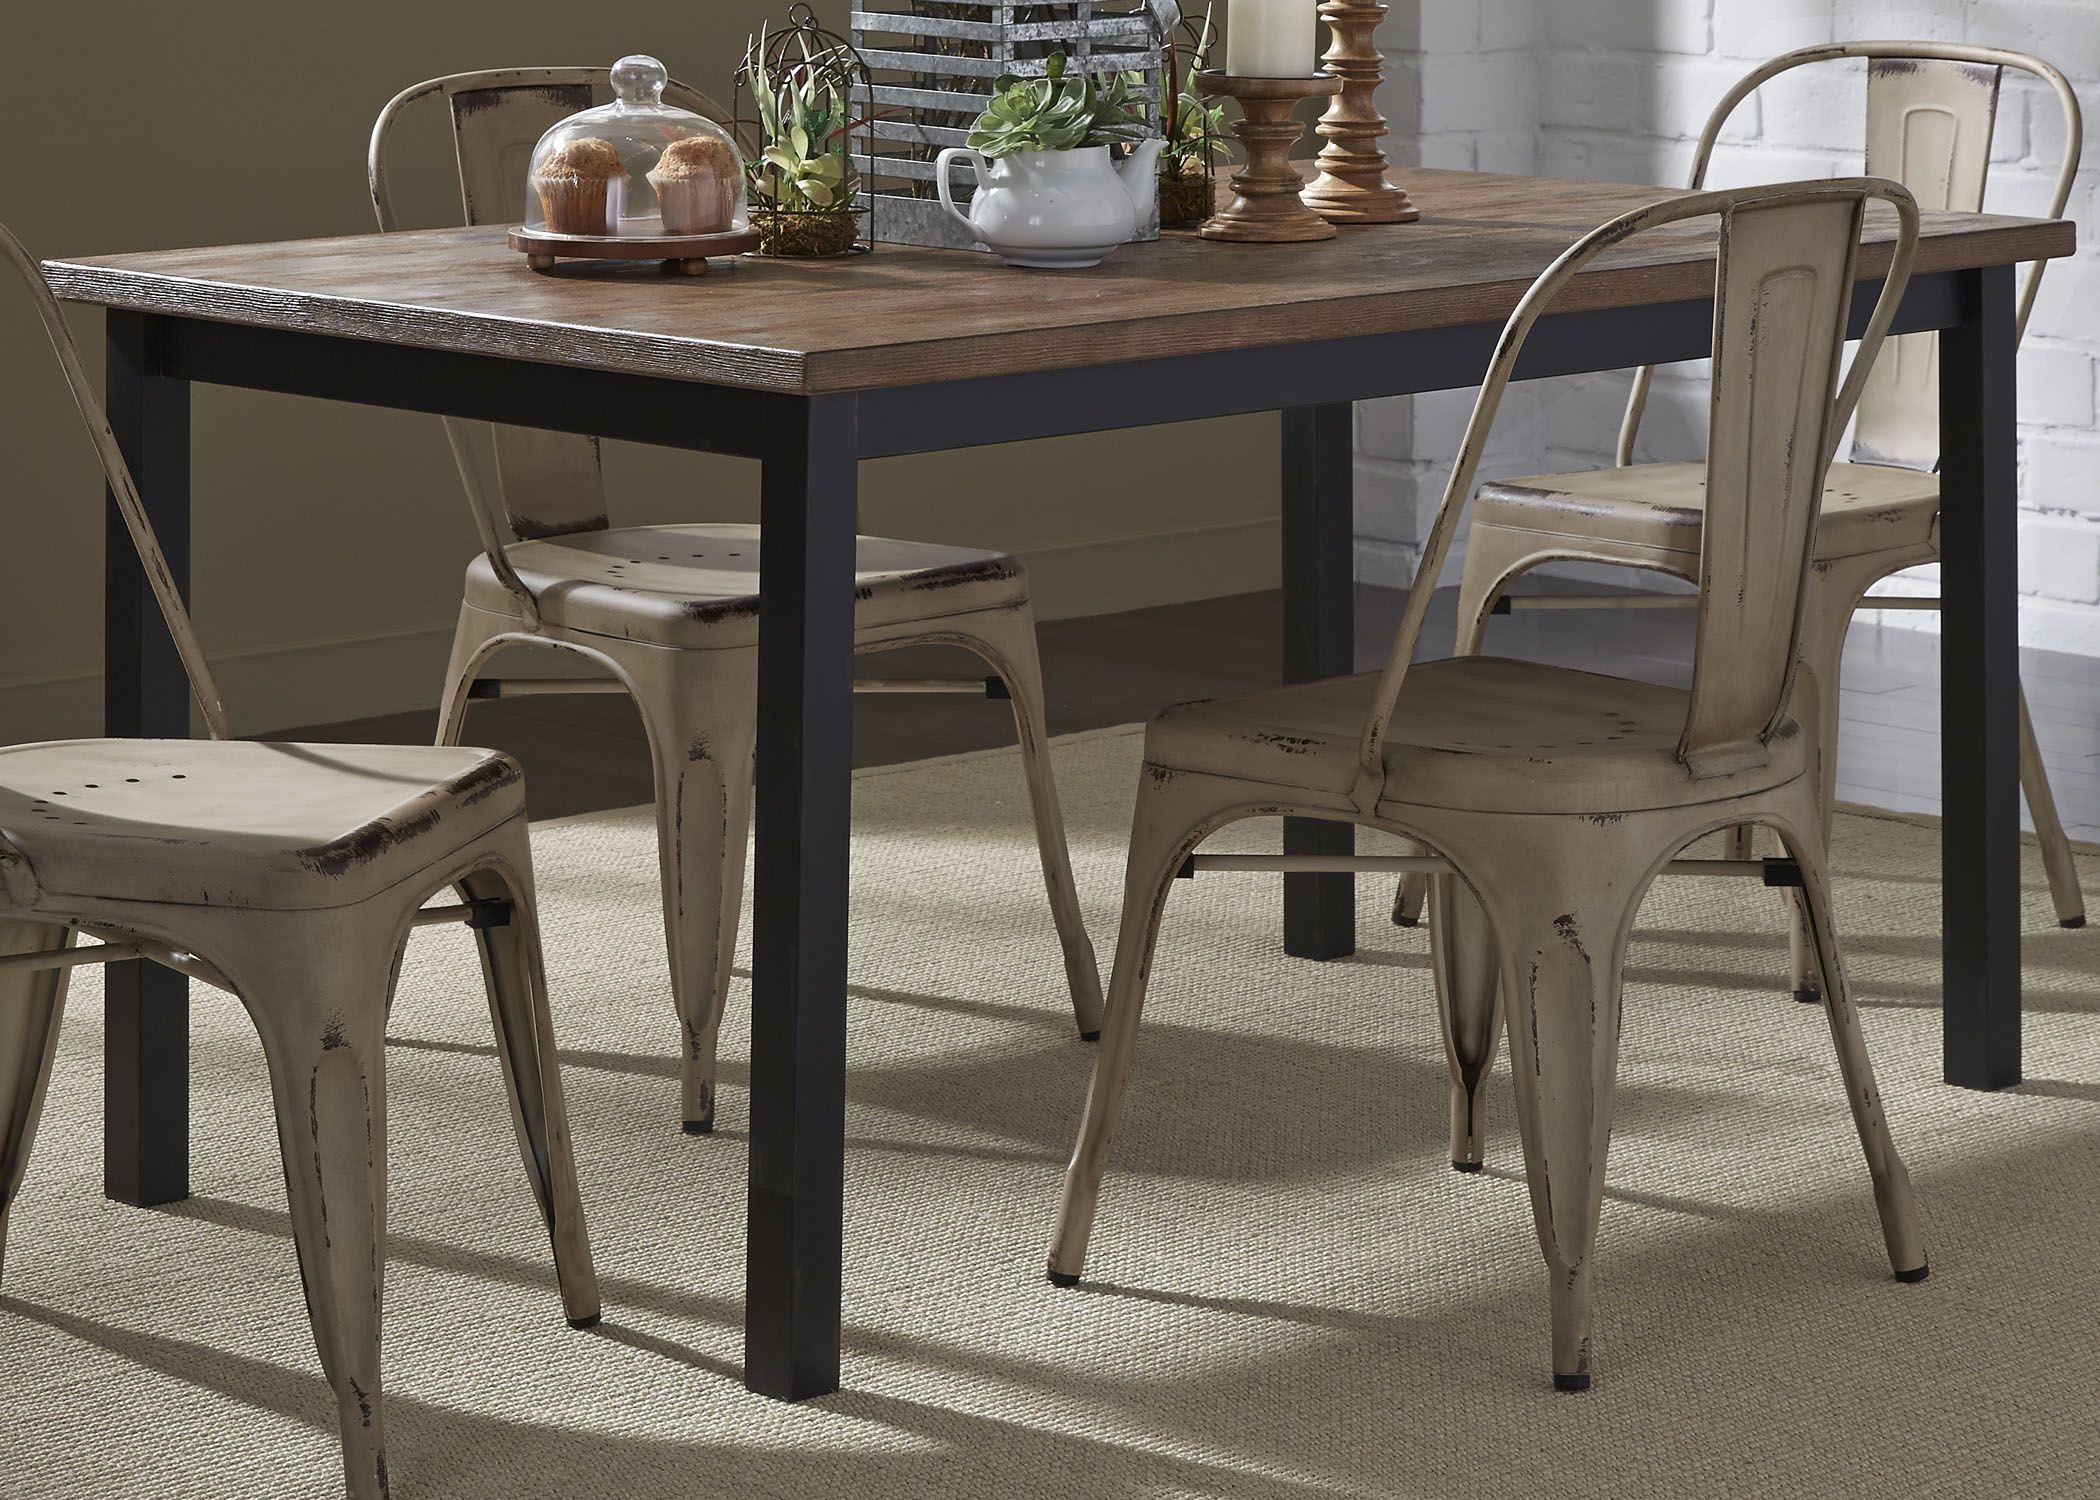 Vintage Weathered Gray Rectangular Leg Dining Table From